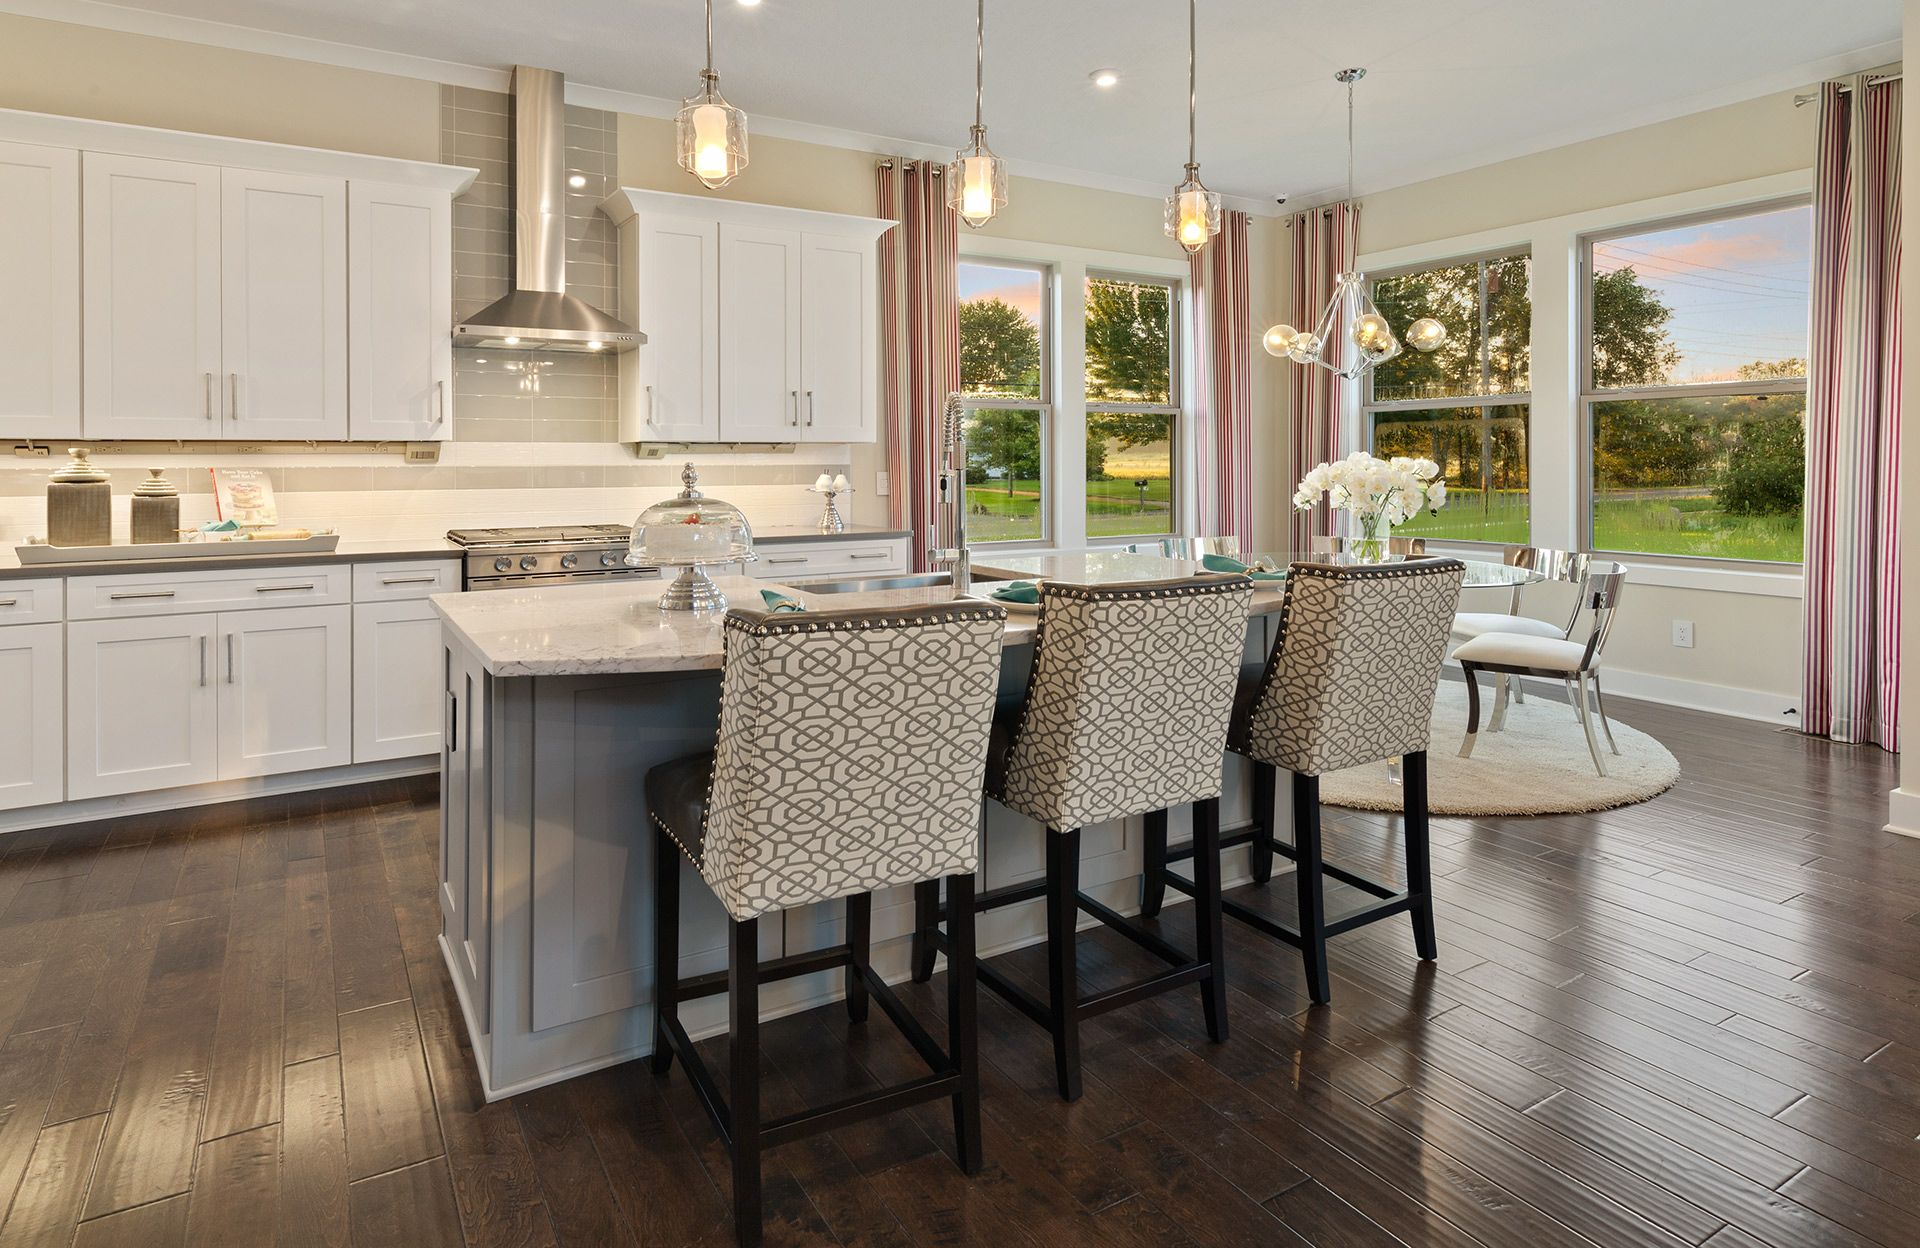 Kitchen featured in the Vanderburgh By Drees Homes in Cleveland, OH